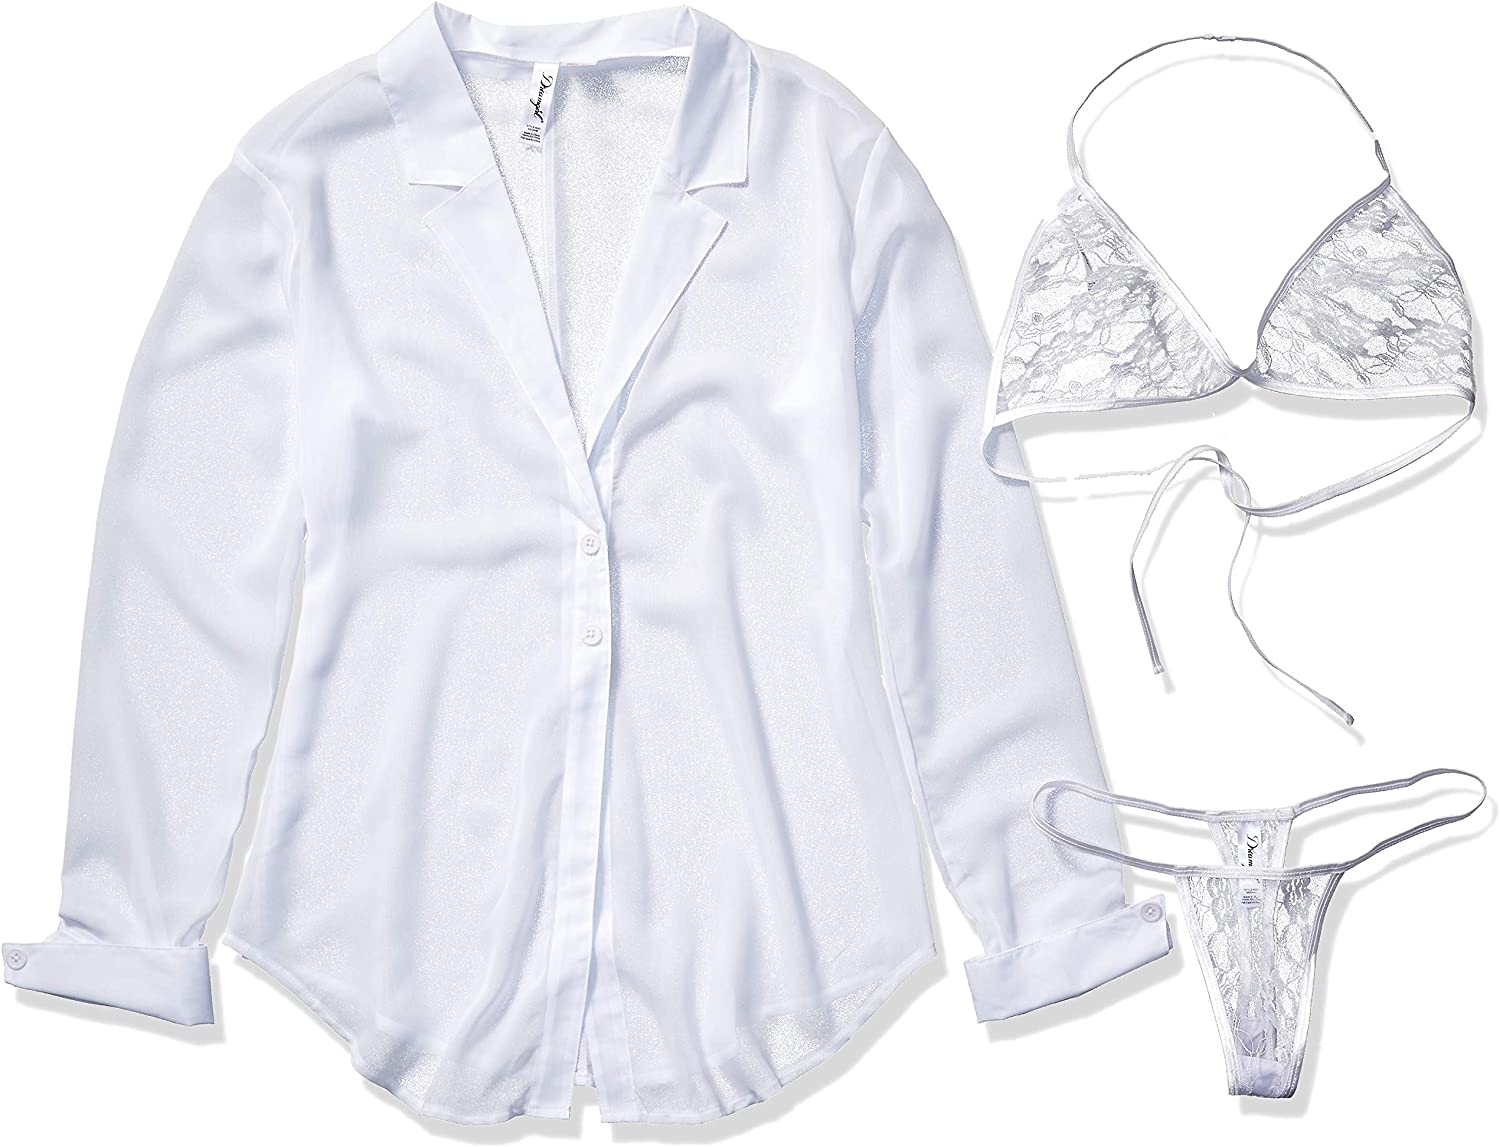 Dreamgirl Women's Office Affair: Adult Exotic Lingerie Sets: Clothing